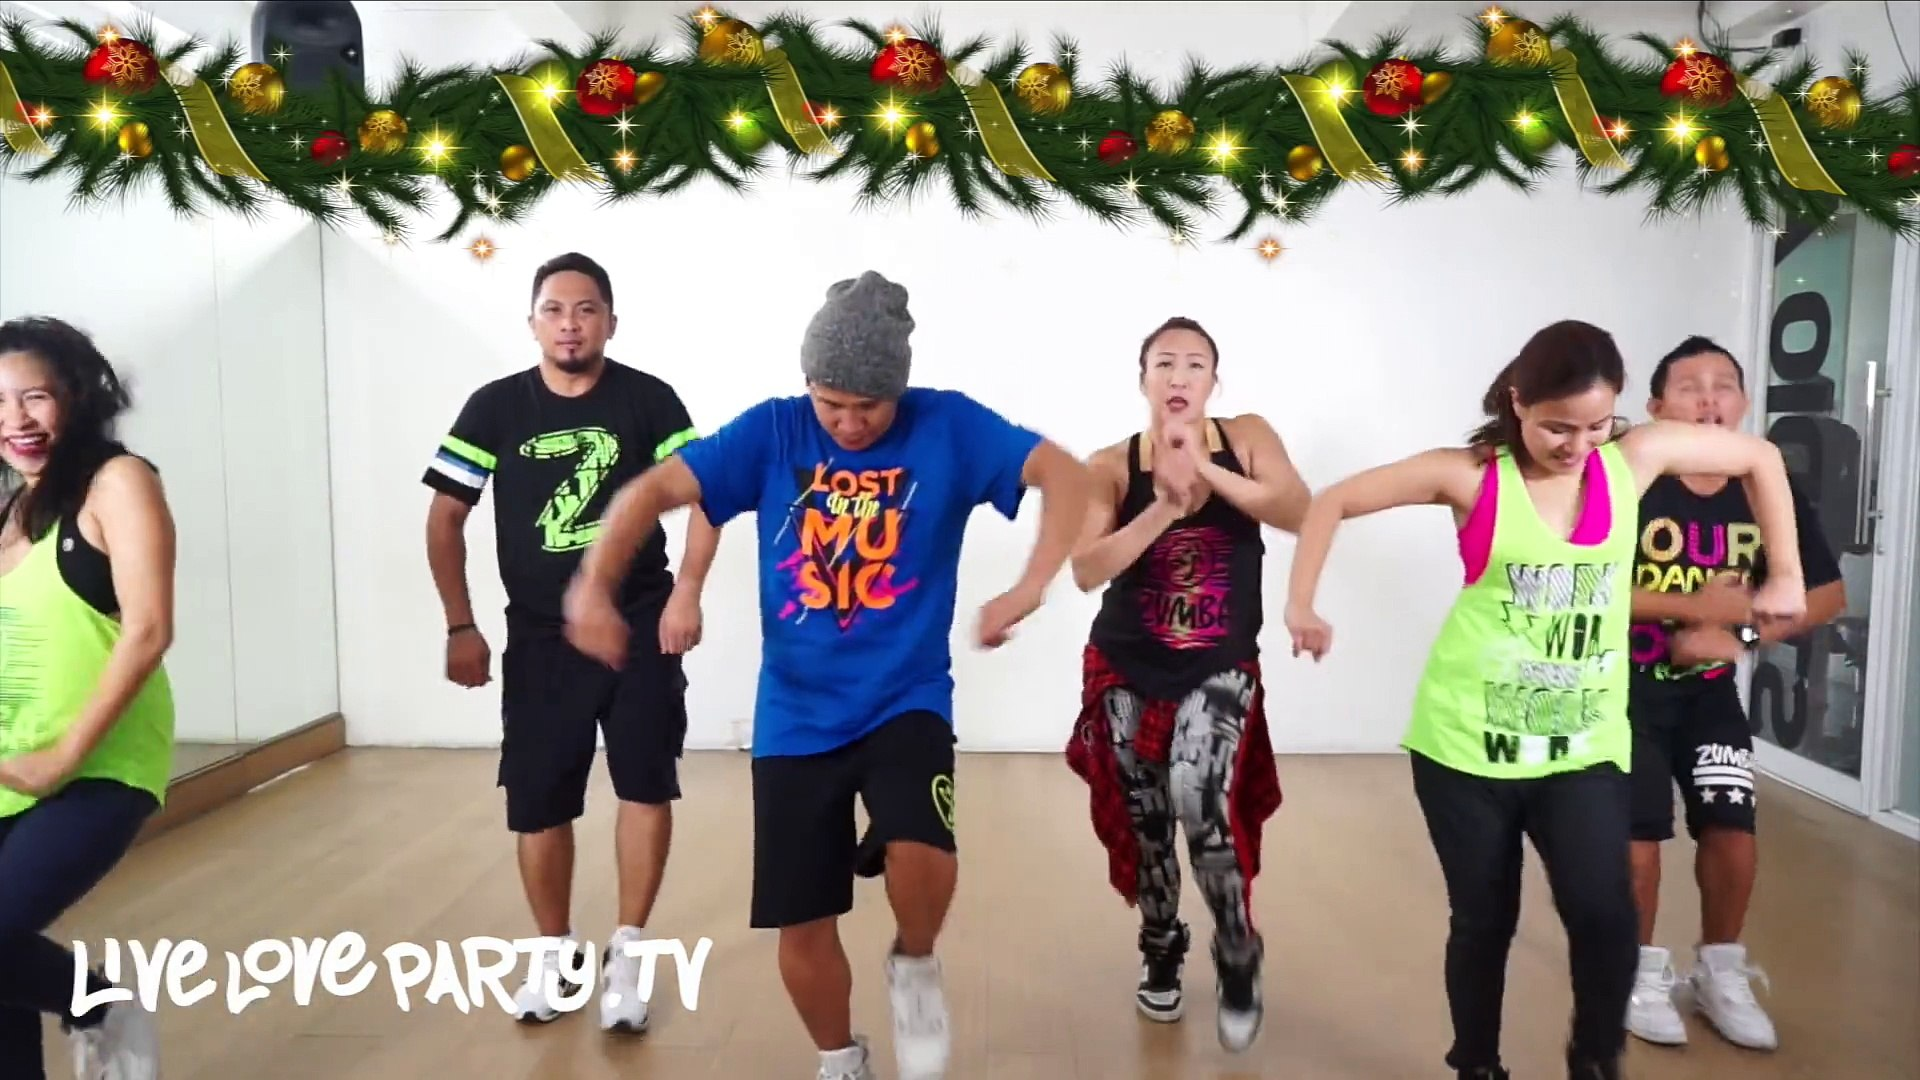 Zumba Christmas Party Images.Merry Christmas Happy Holidays Live Love Party Zumba Dance Fitness